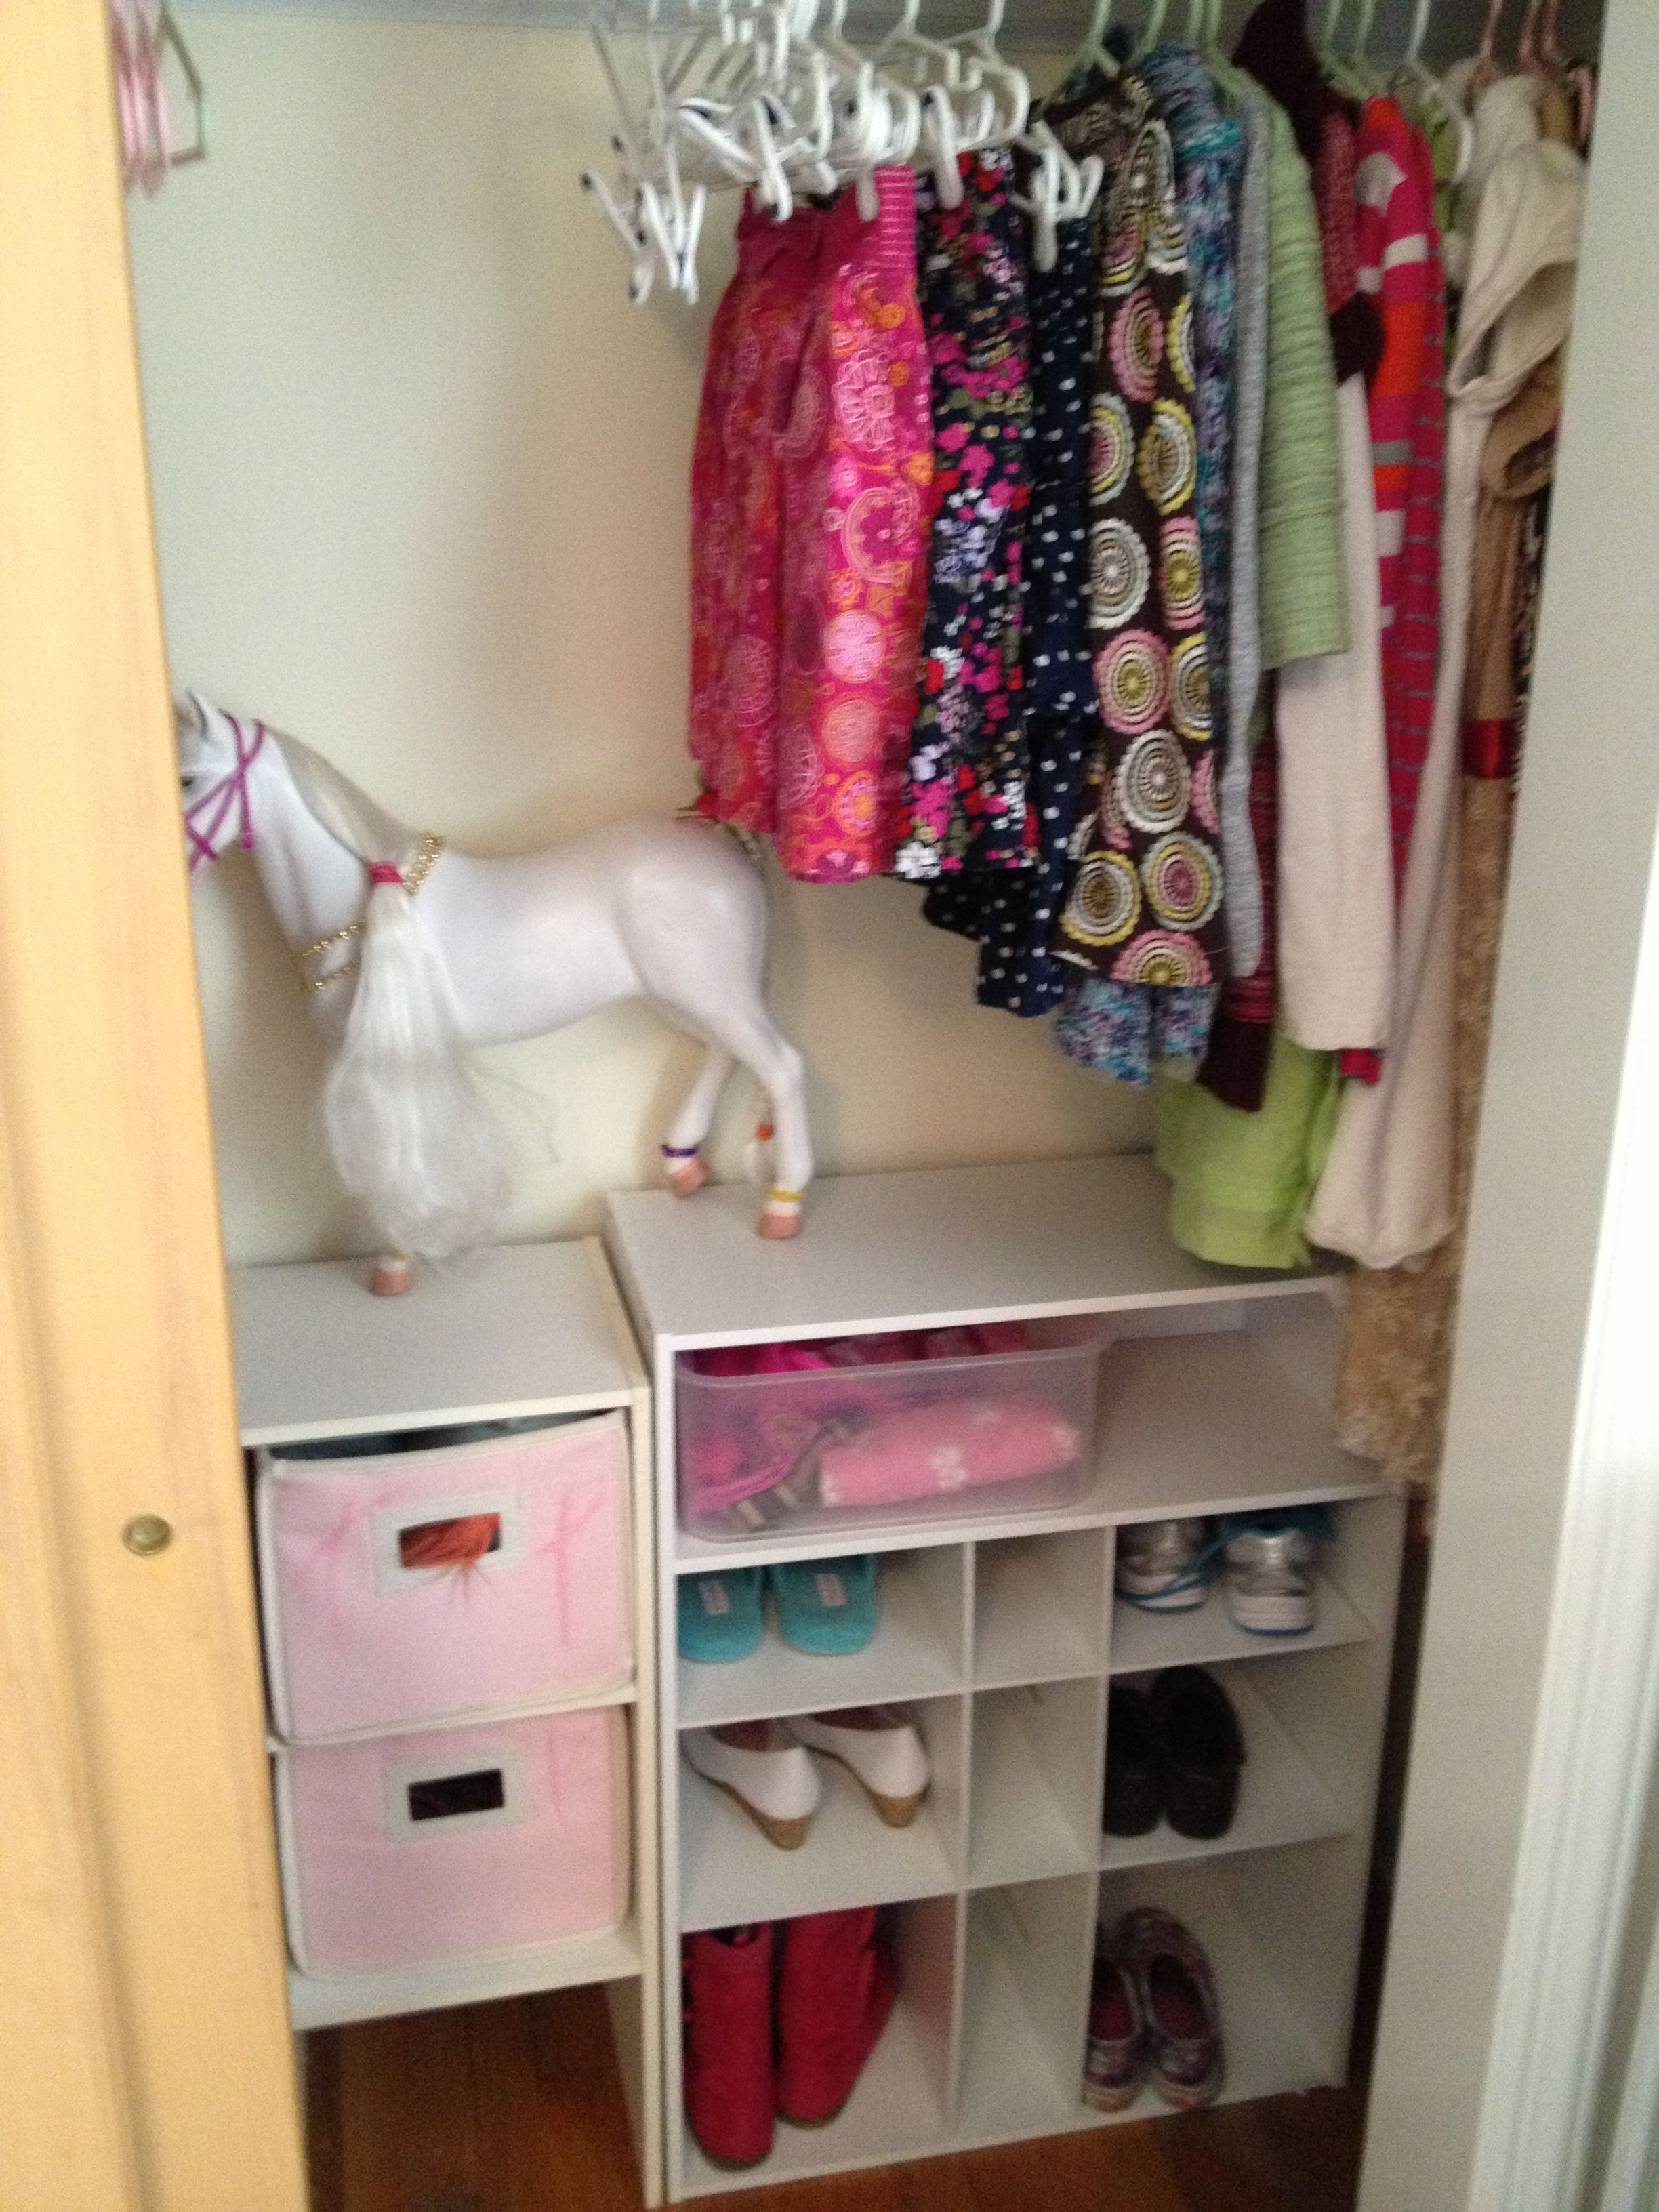 Reorganizing Room: Girl's Room Closet Reorganize- Declutter Toys And Use